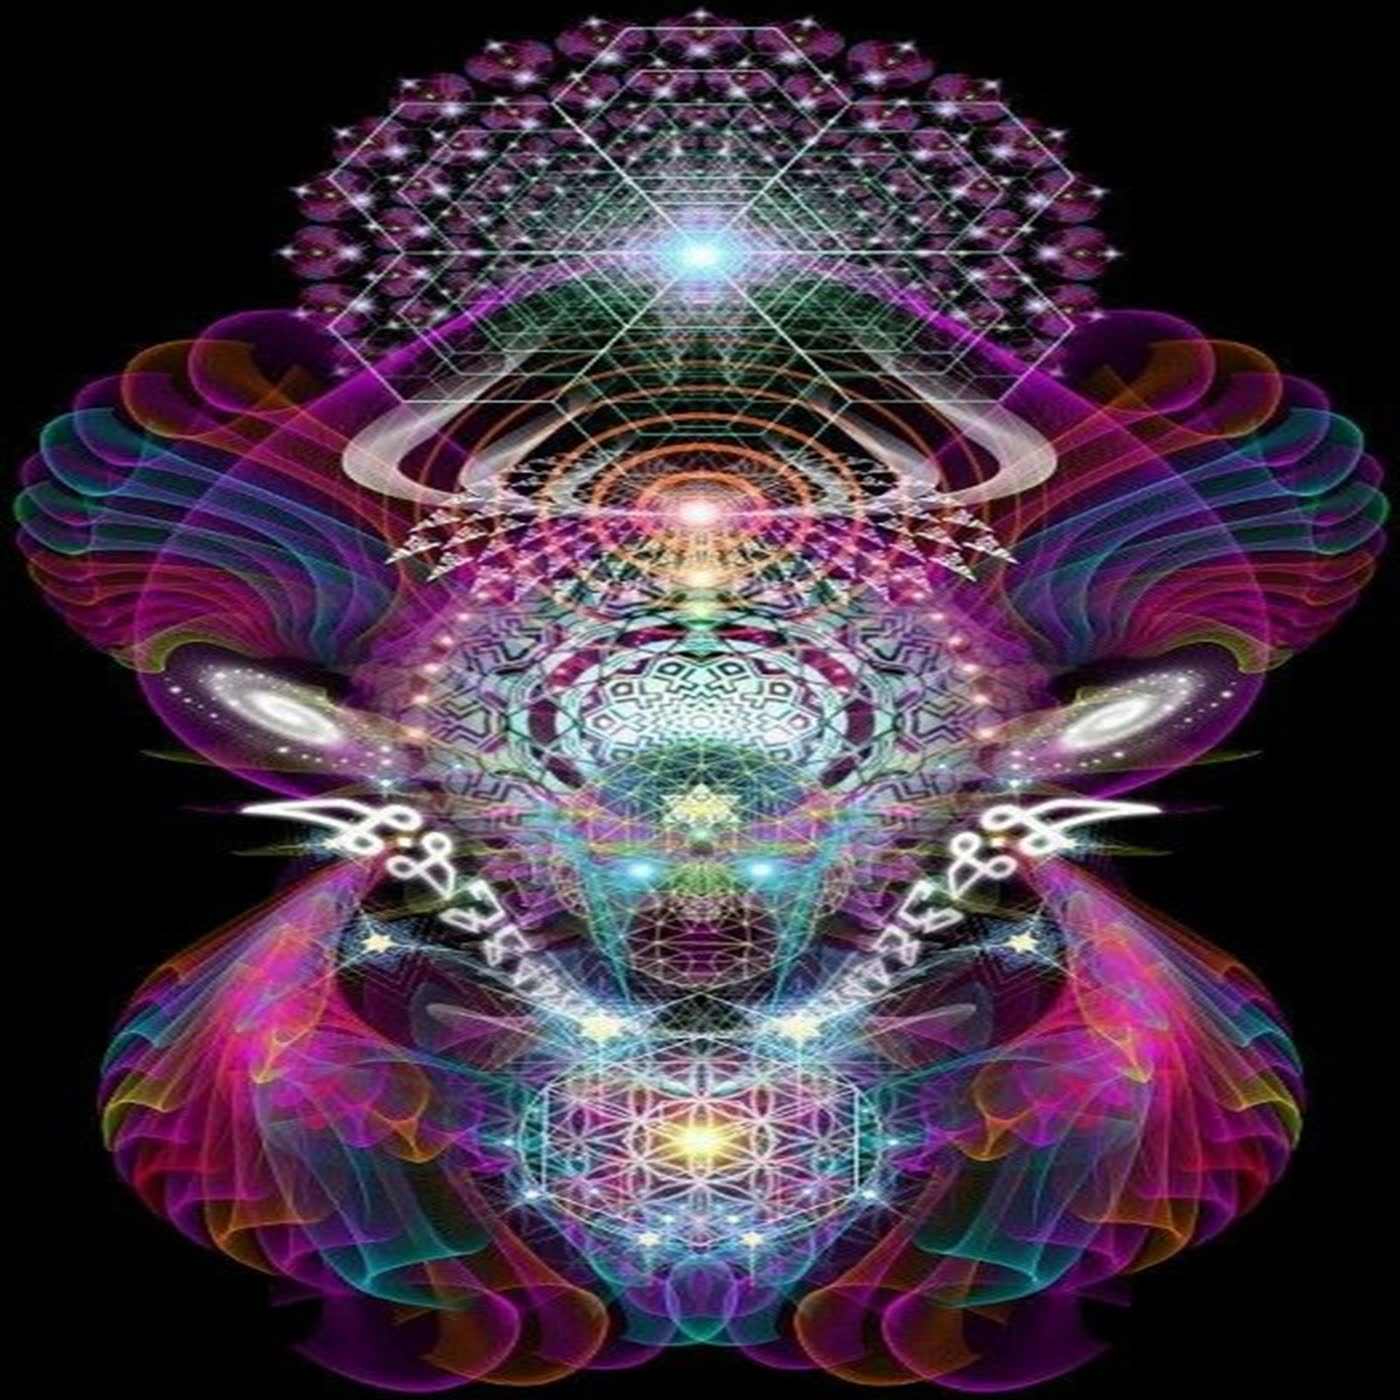 From The Sun Psy Trance